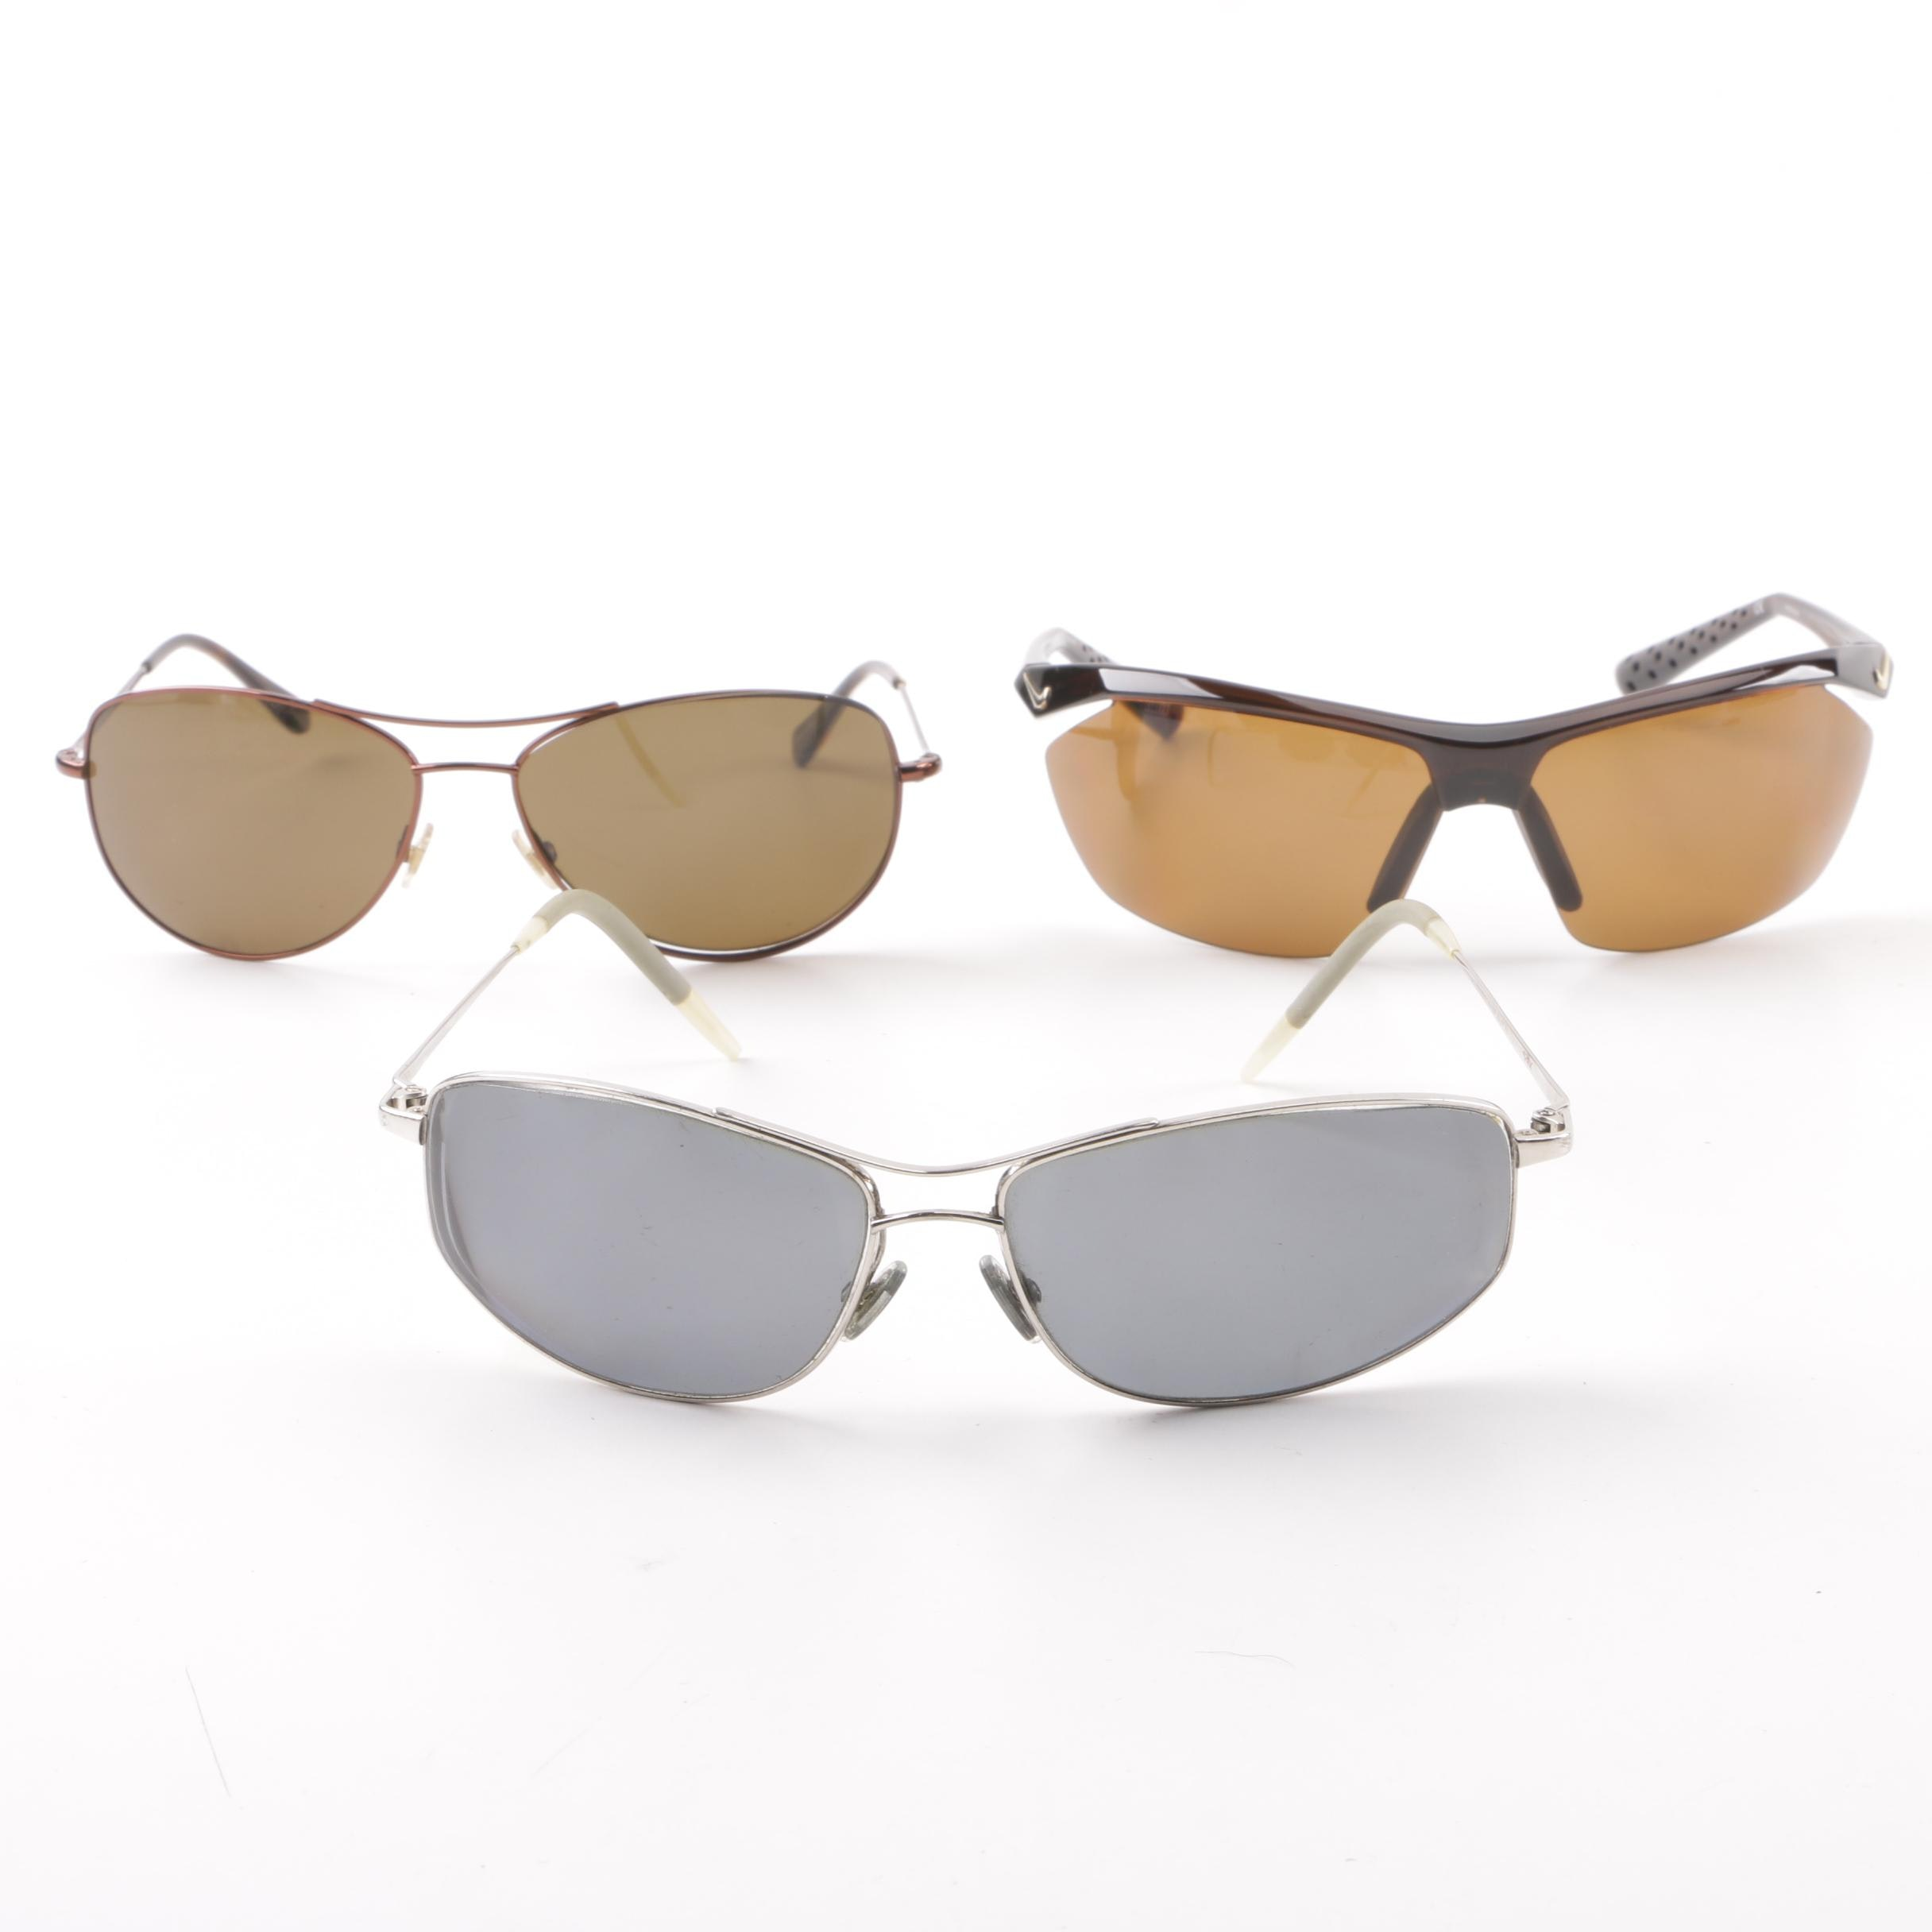 Kate Spade and Nike Sunglasses with Oliver Peoples Prescription Sunglasses